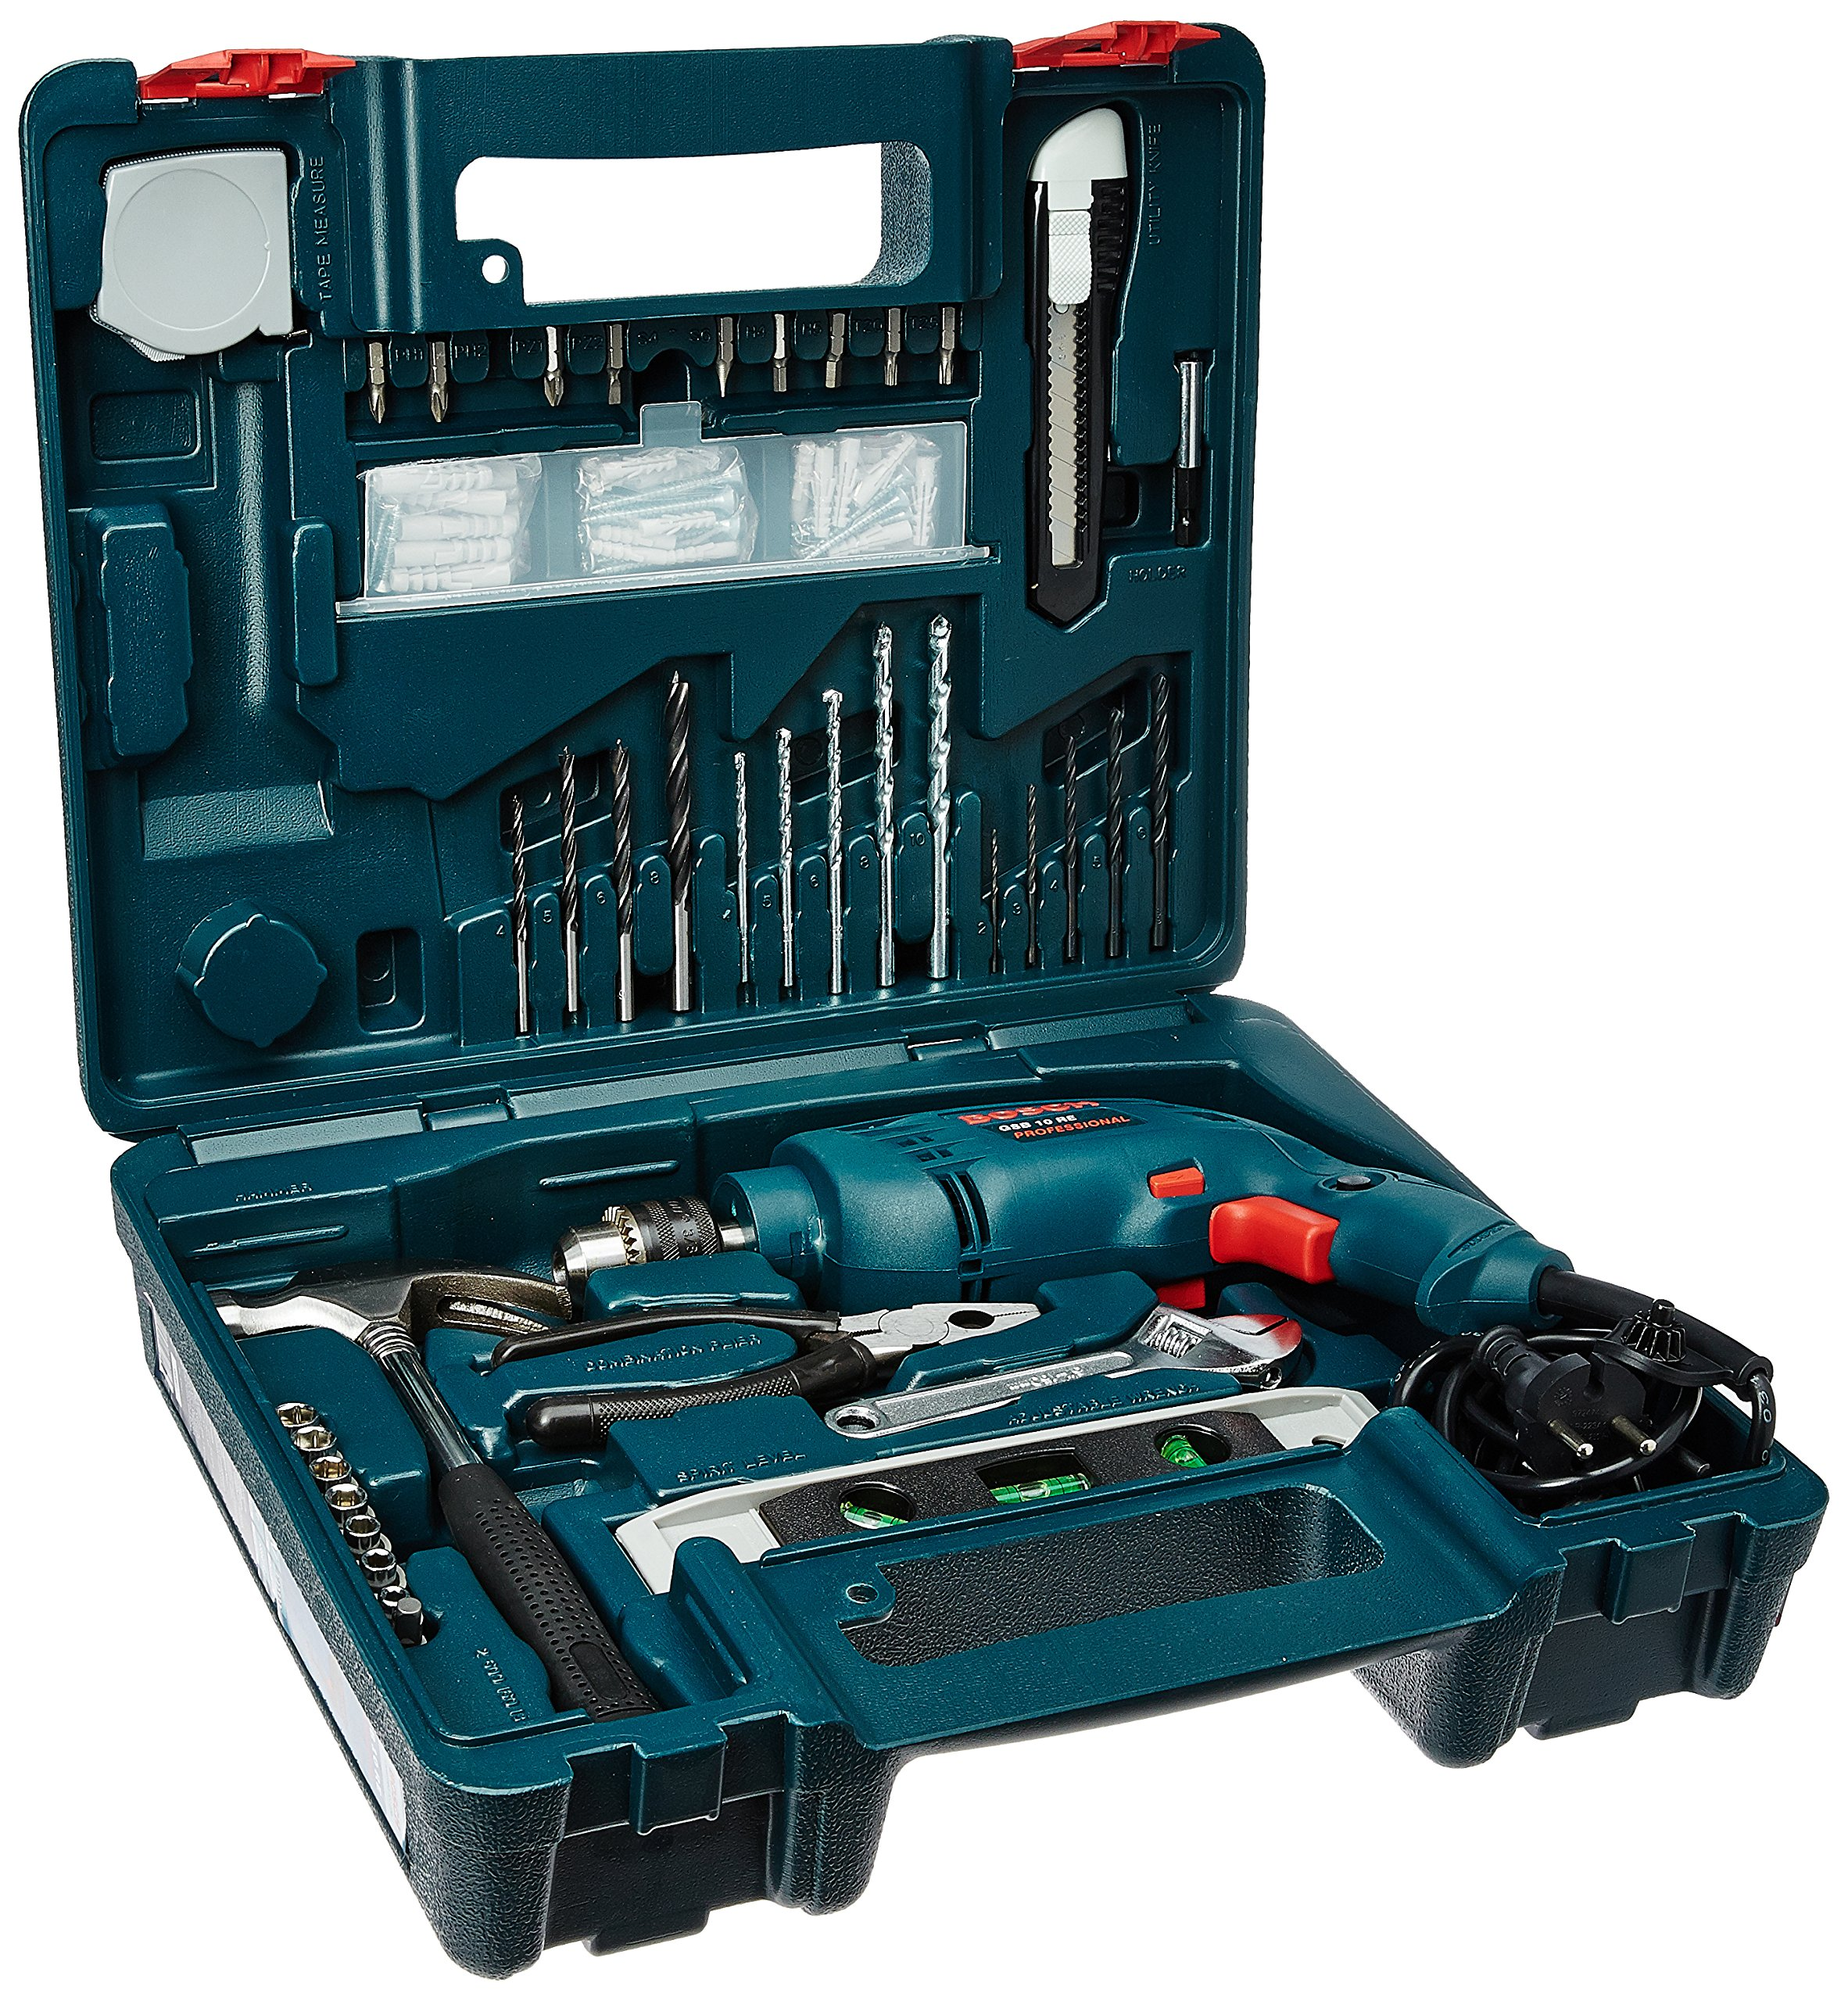 Bosch GSB 500W 10 RE Professional Tool Kit (Blue, Pack of 100) product image